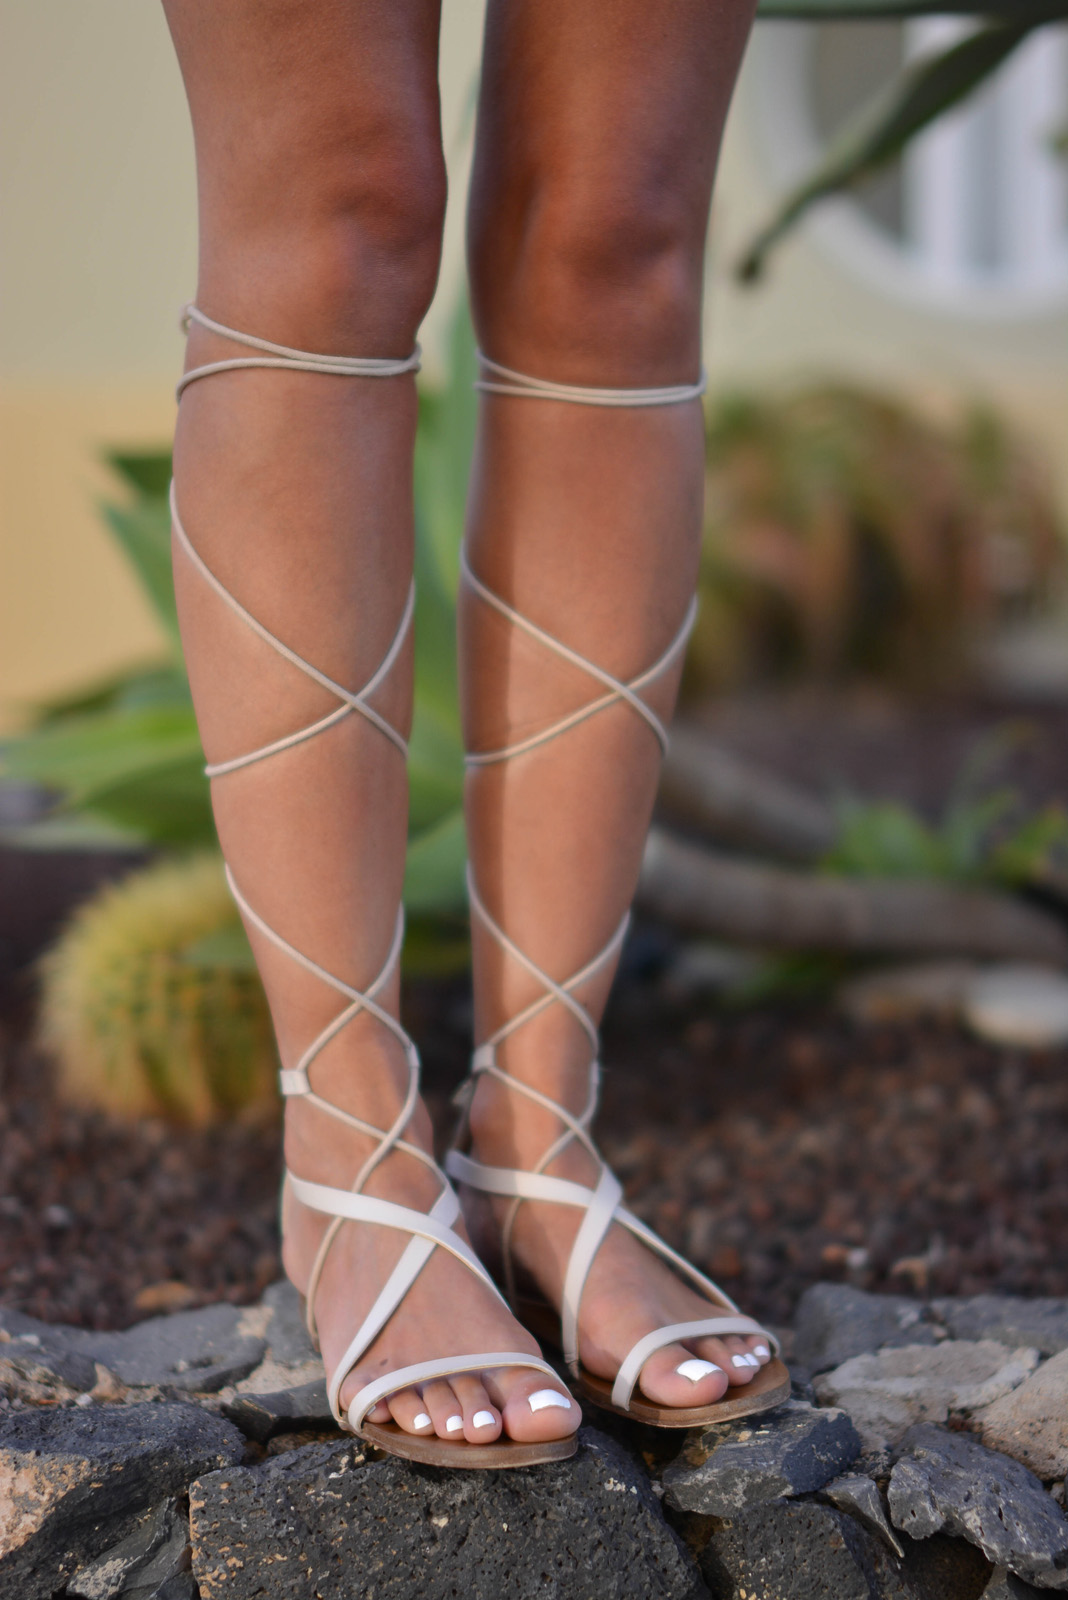 EJSTYLE - Emma Hill wears cream Mango tie up high leg gladiator sandals